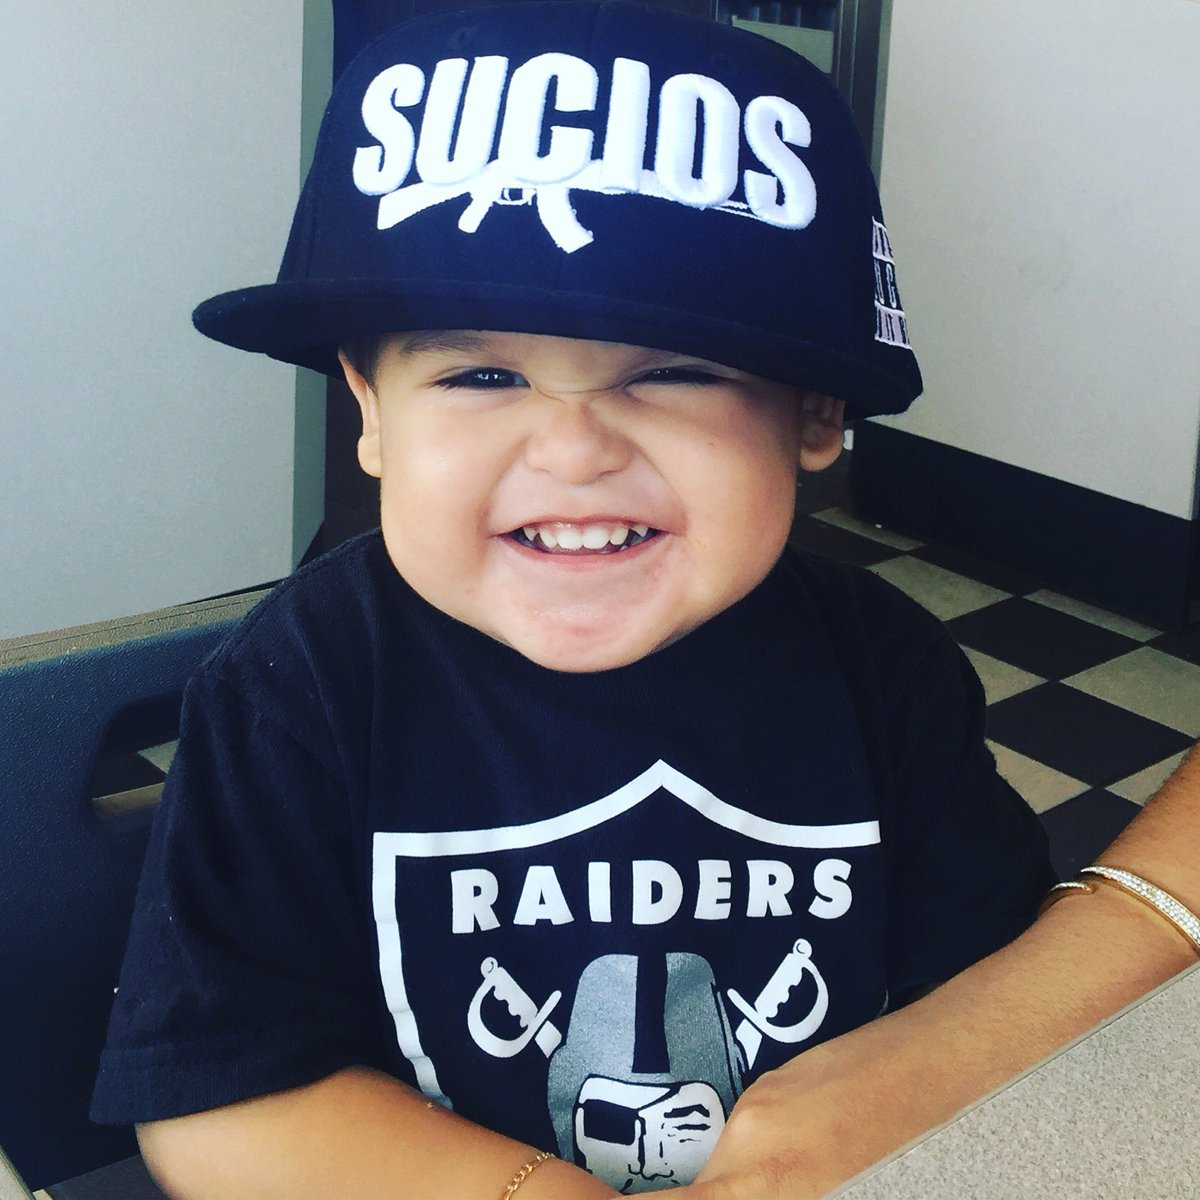 Cela On Twitter My Baby Reppin The Sucios Hat At Kinglilg